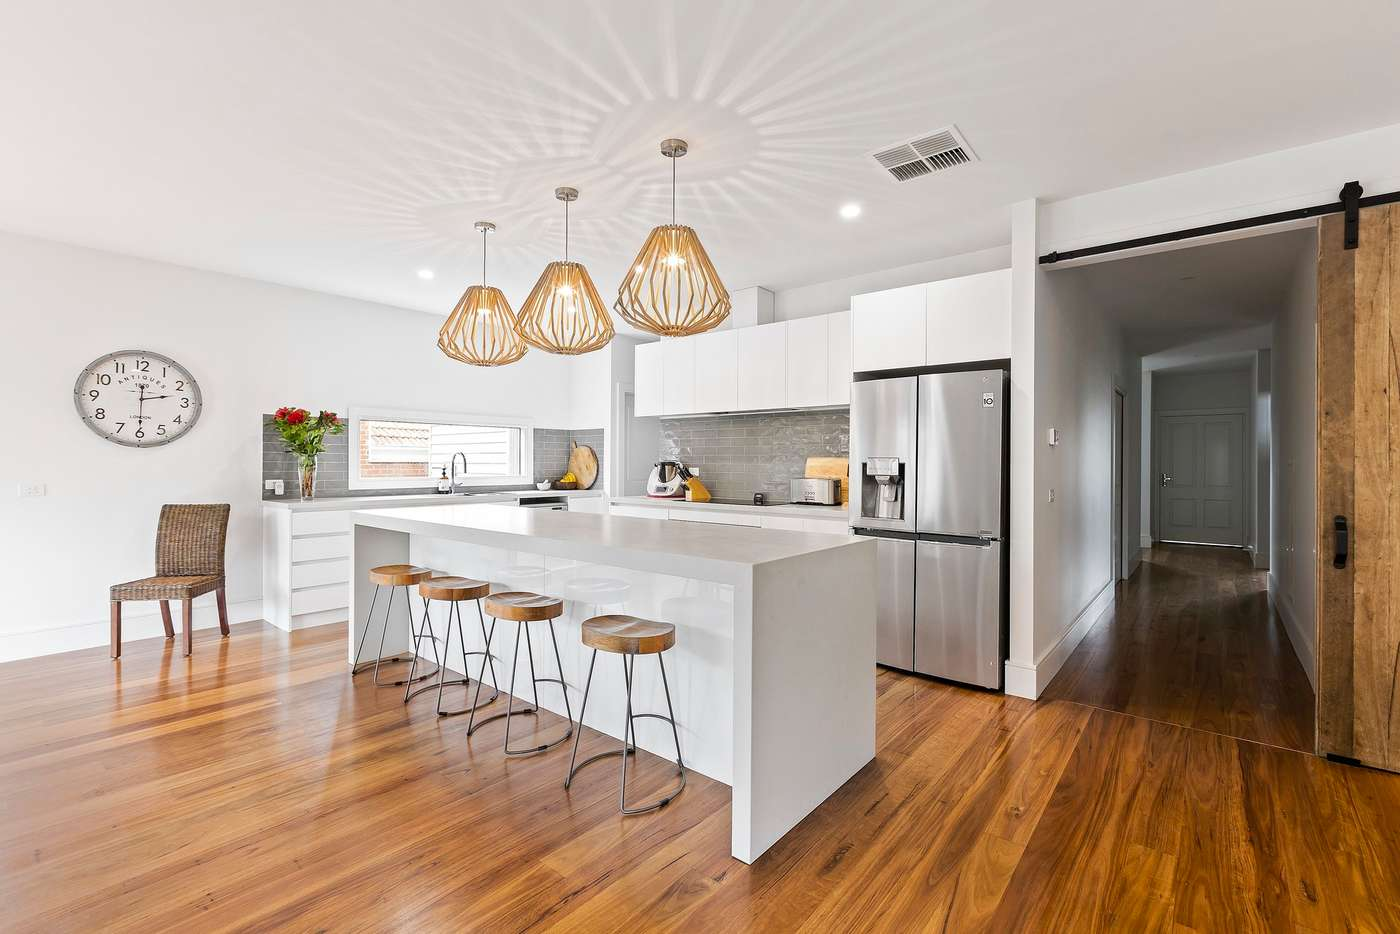 Main view of Homely house listing, 130 Woodhouse Grove, Box Hill North VIC 3129